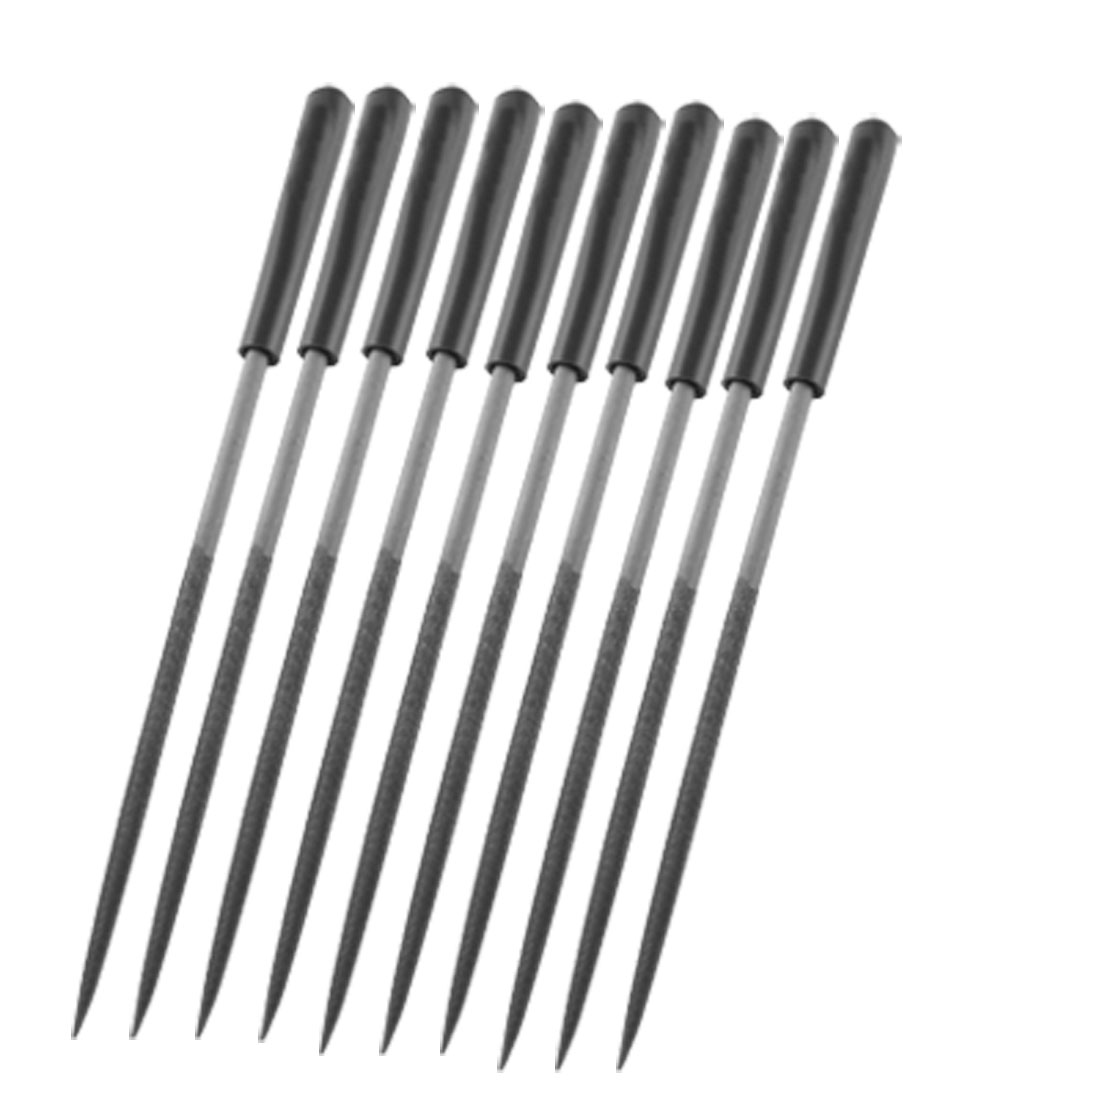 Metalsmith Artist Helpers Tool Round Needle Files 10Pcs